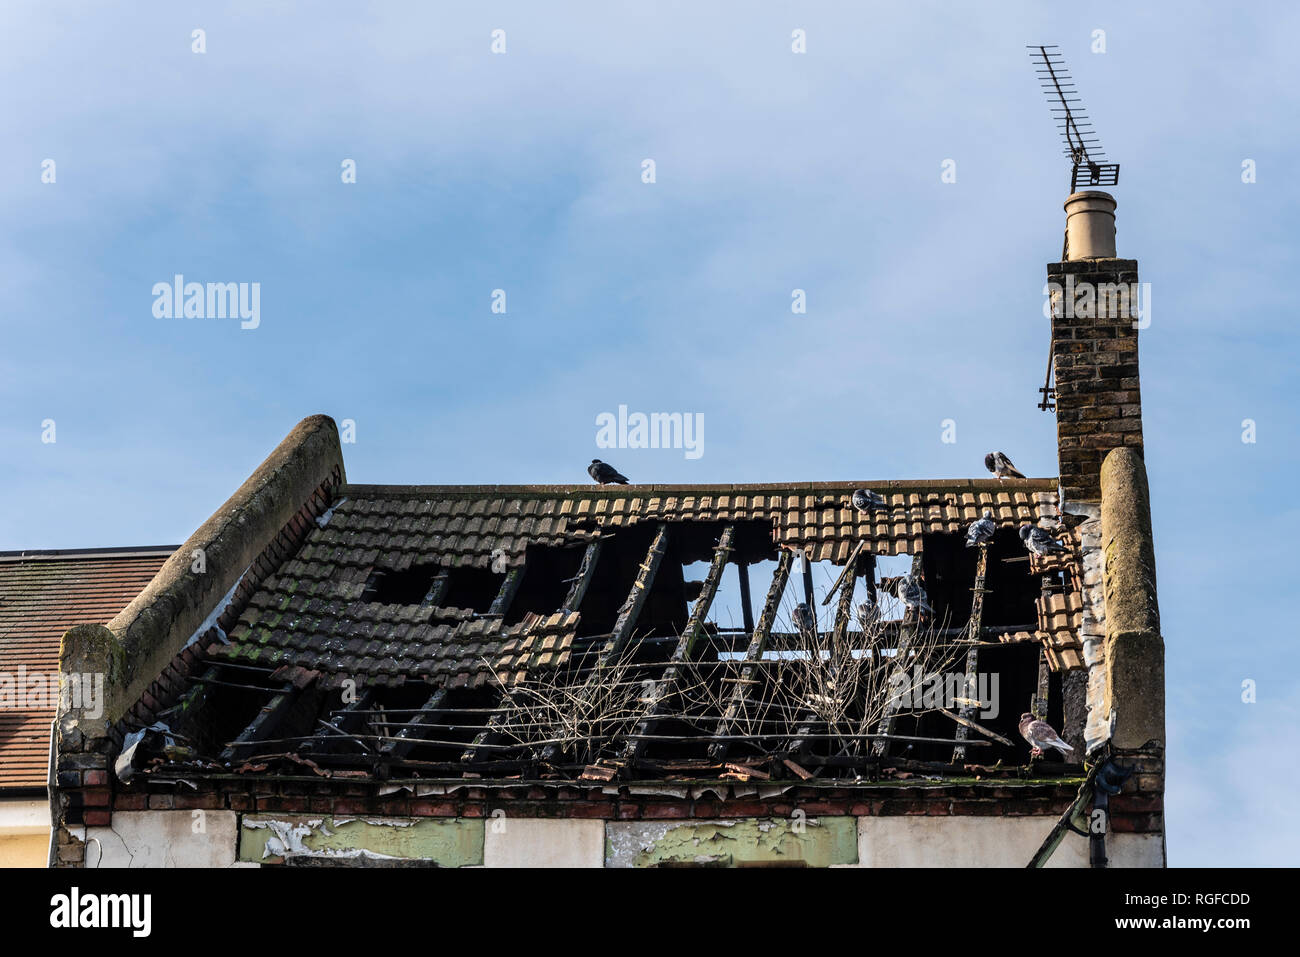 Old decaying building. Collapsed roof of an old building with pigeons in the loft space. Skeleton of roof timbers of house, dwelling. Space for copy - Stock Image